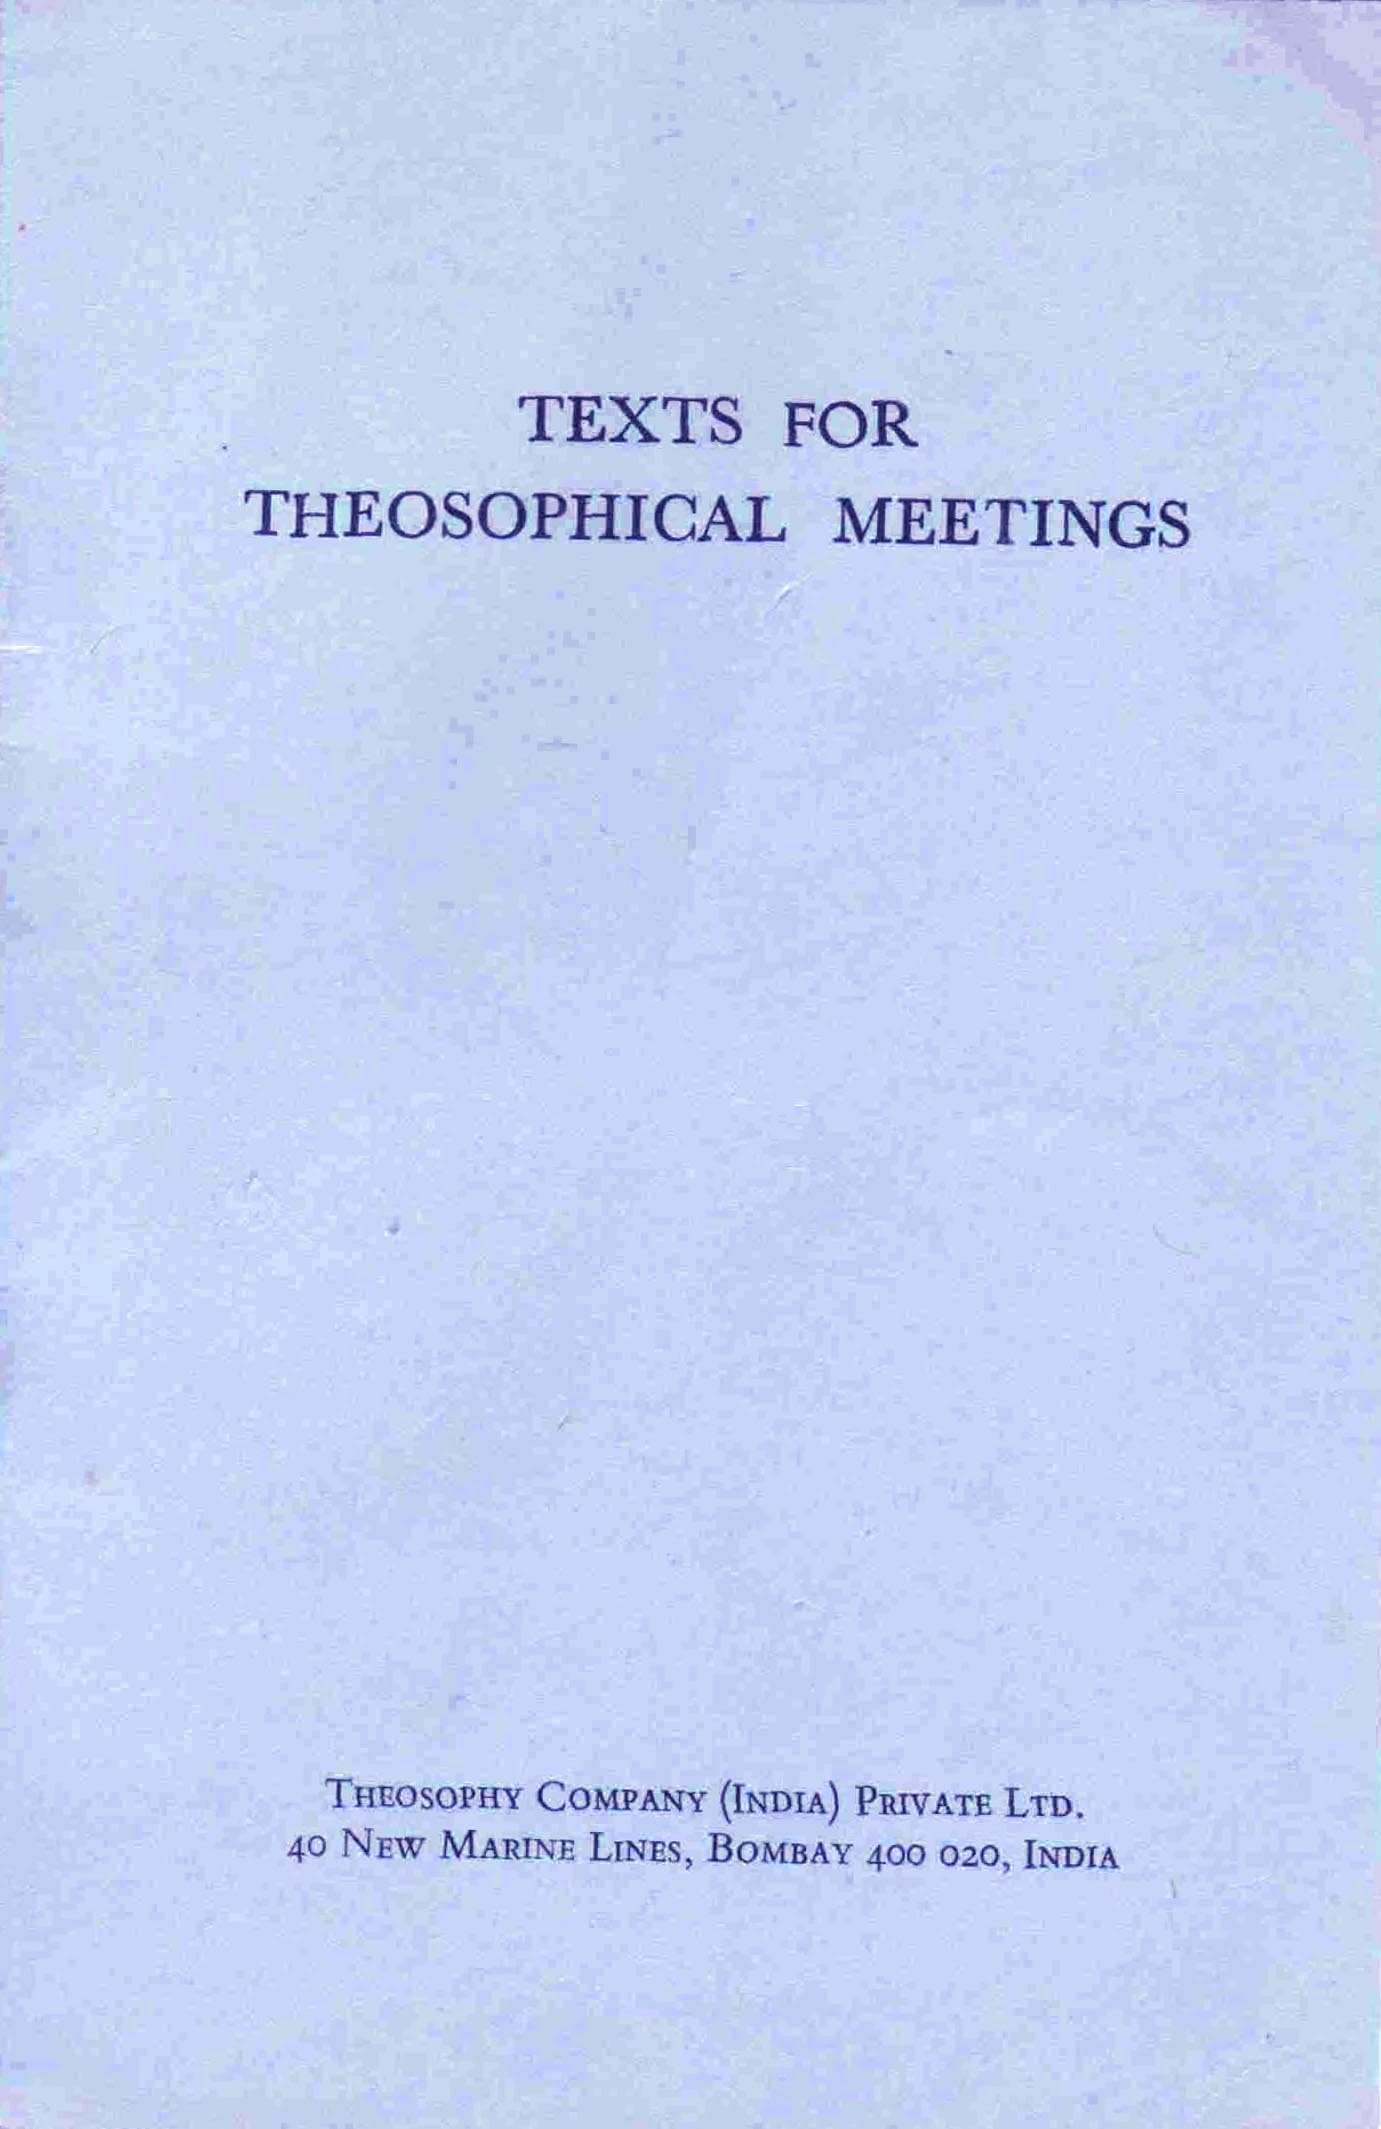 Texts for Theosophical Meetings by ULT